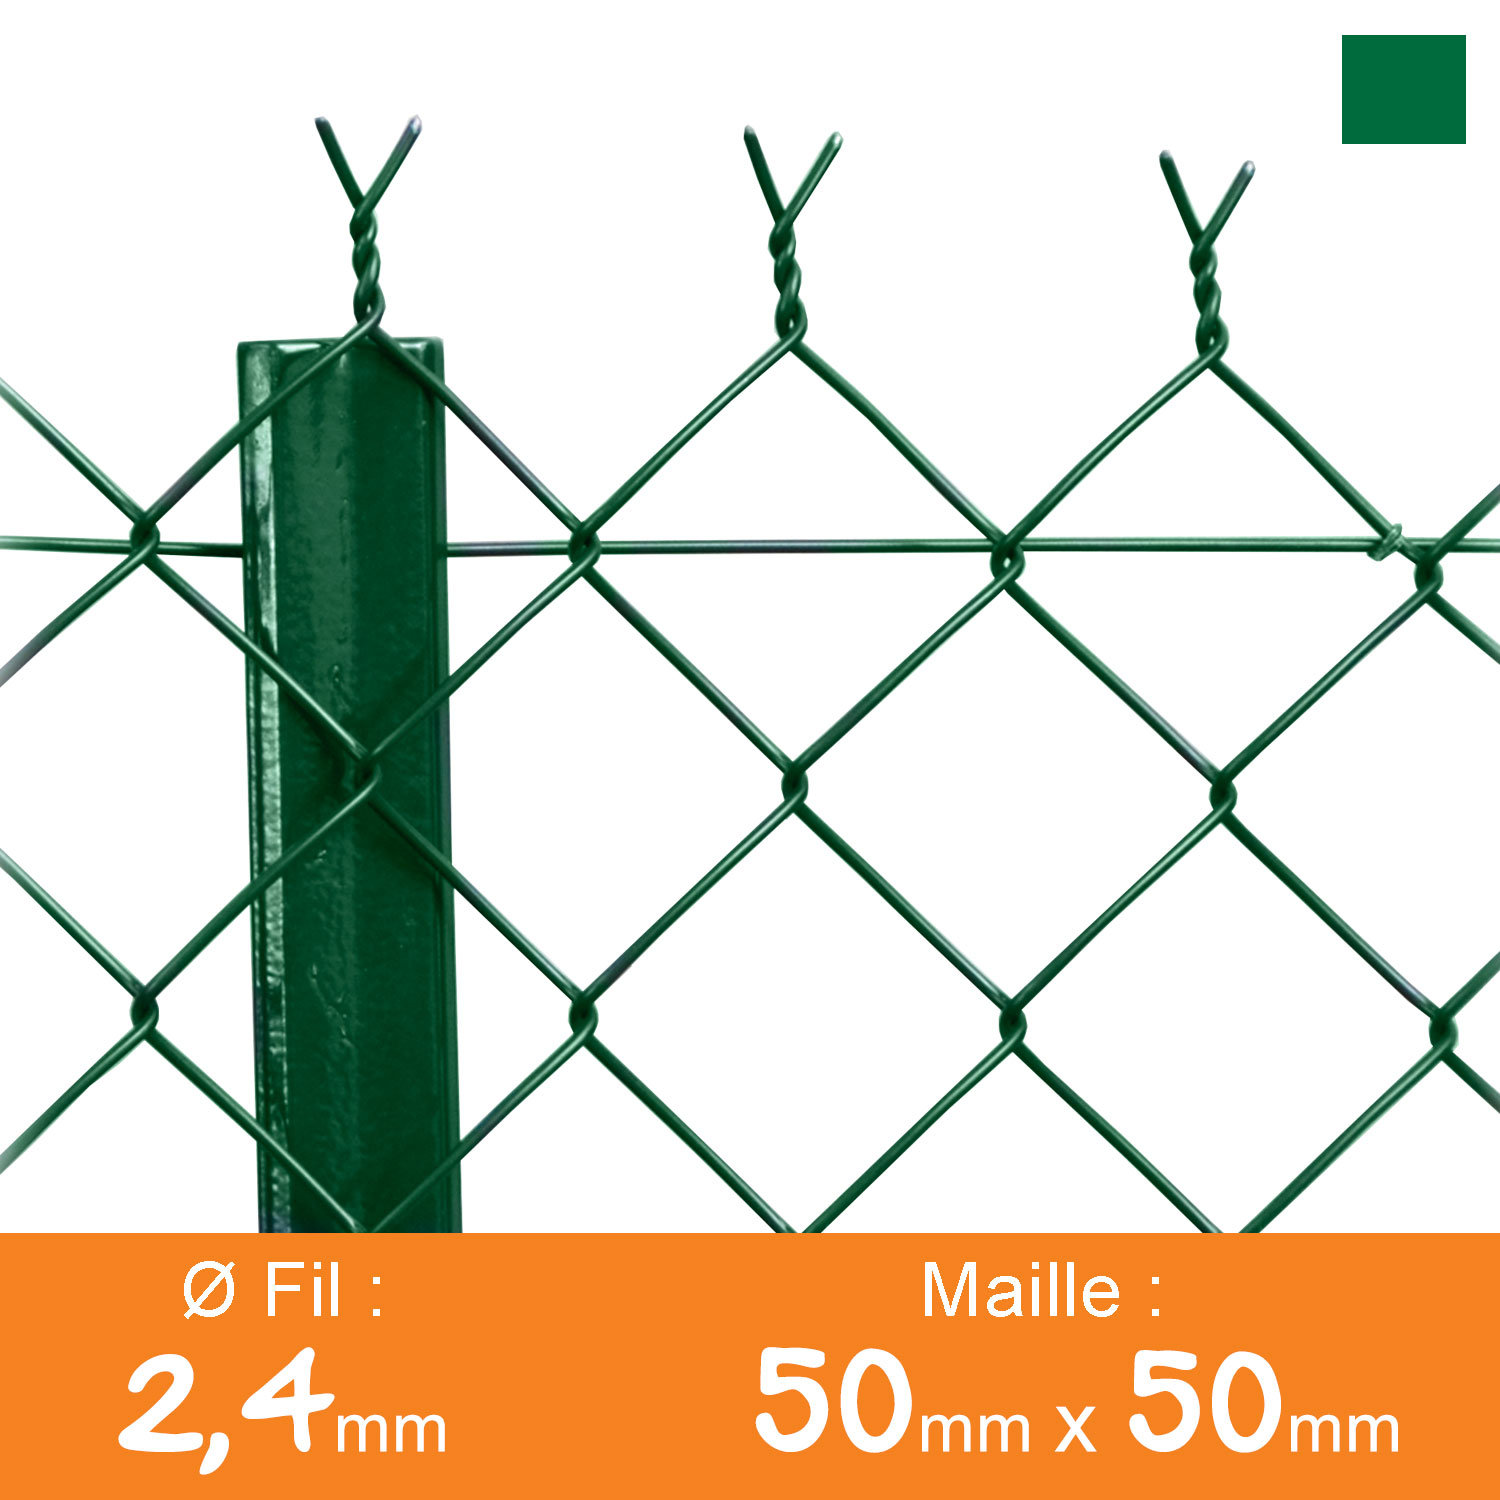 Grillage simple torsion 50 x 50 mm - Ø 2,4 mm - Lg. 25 m Vert